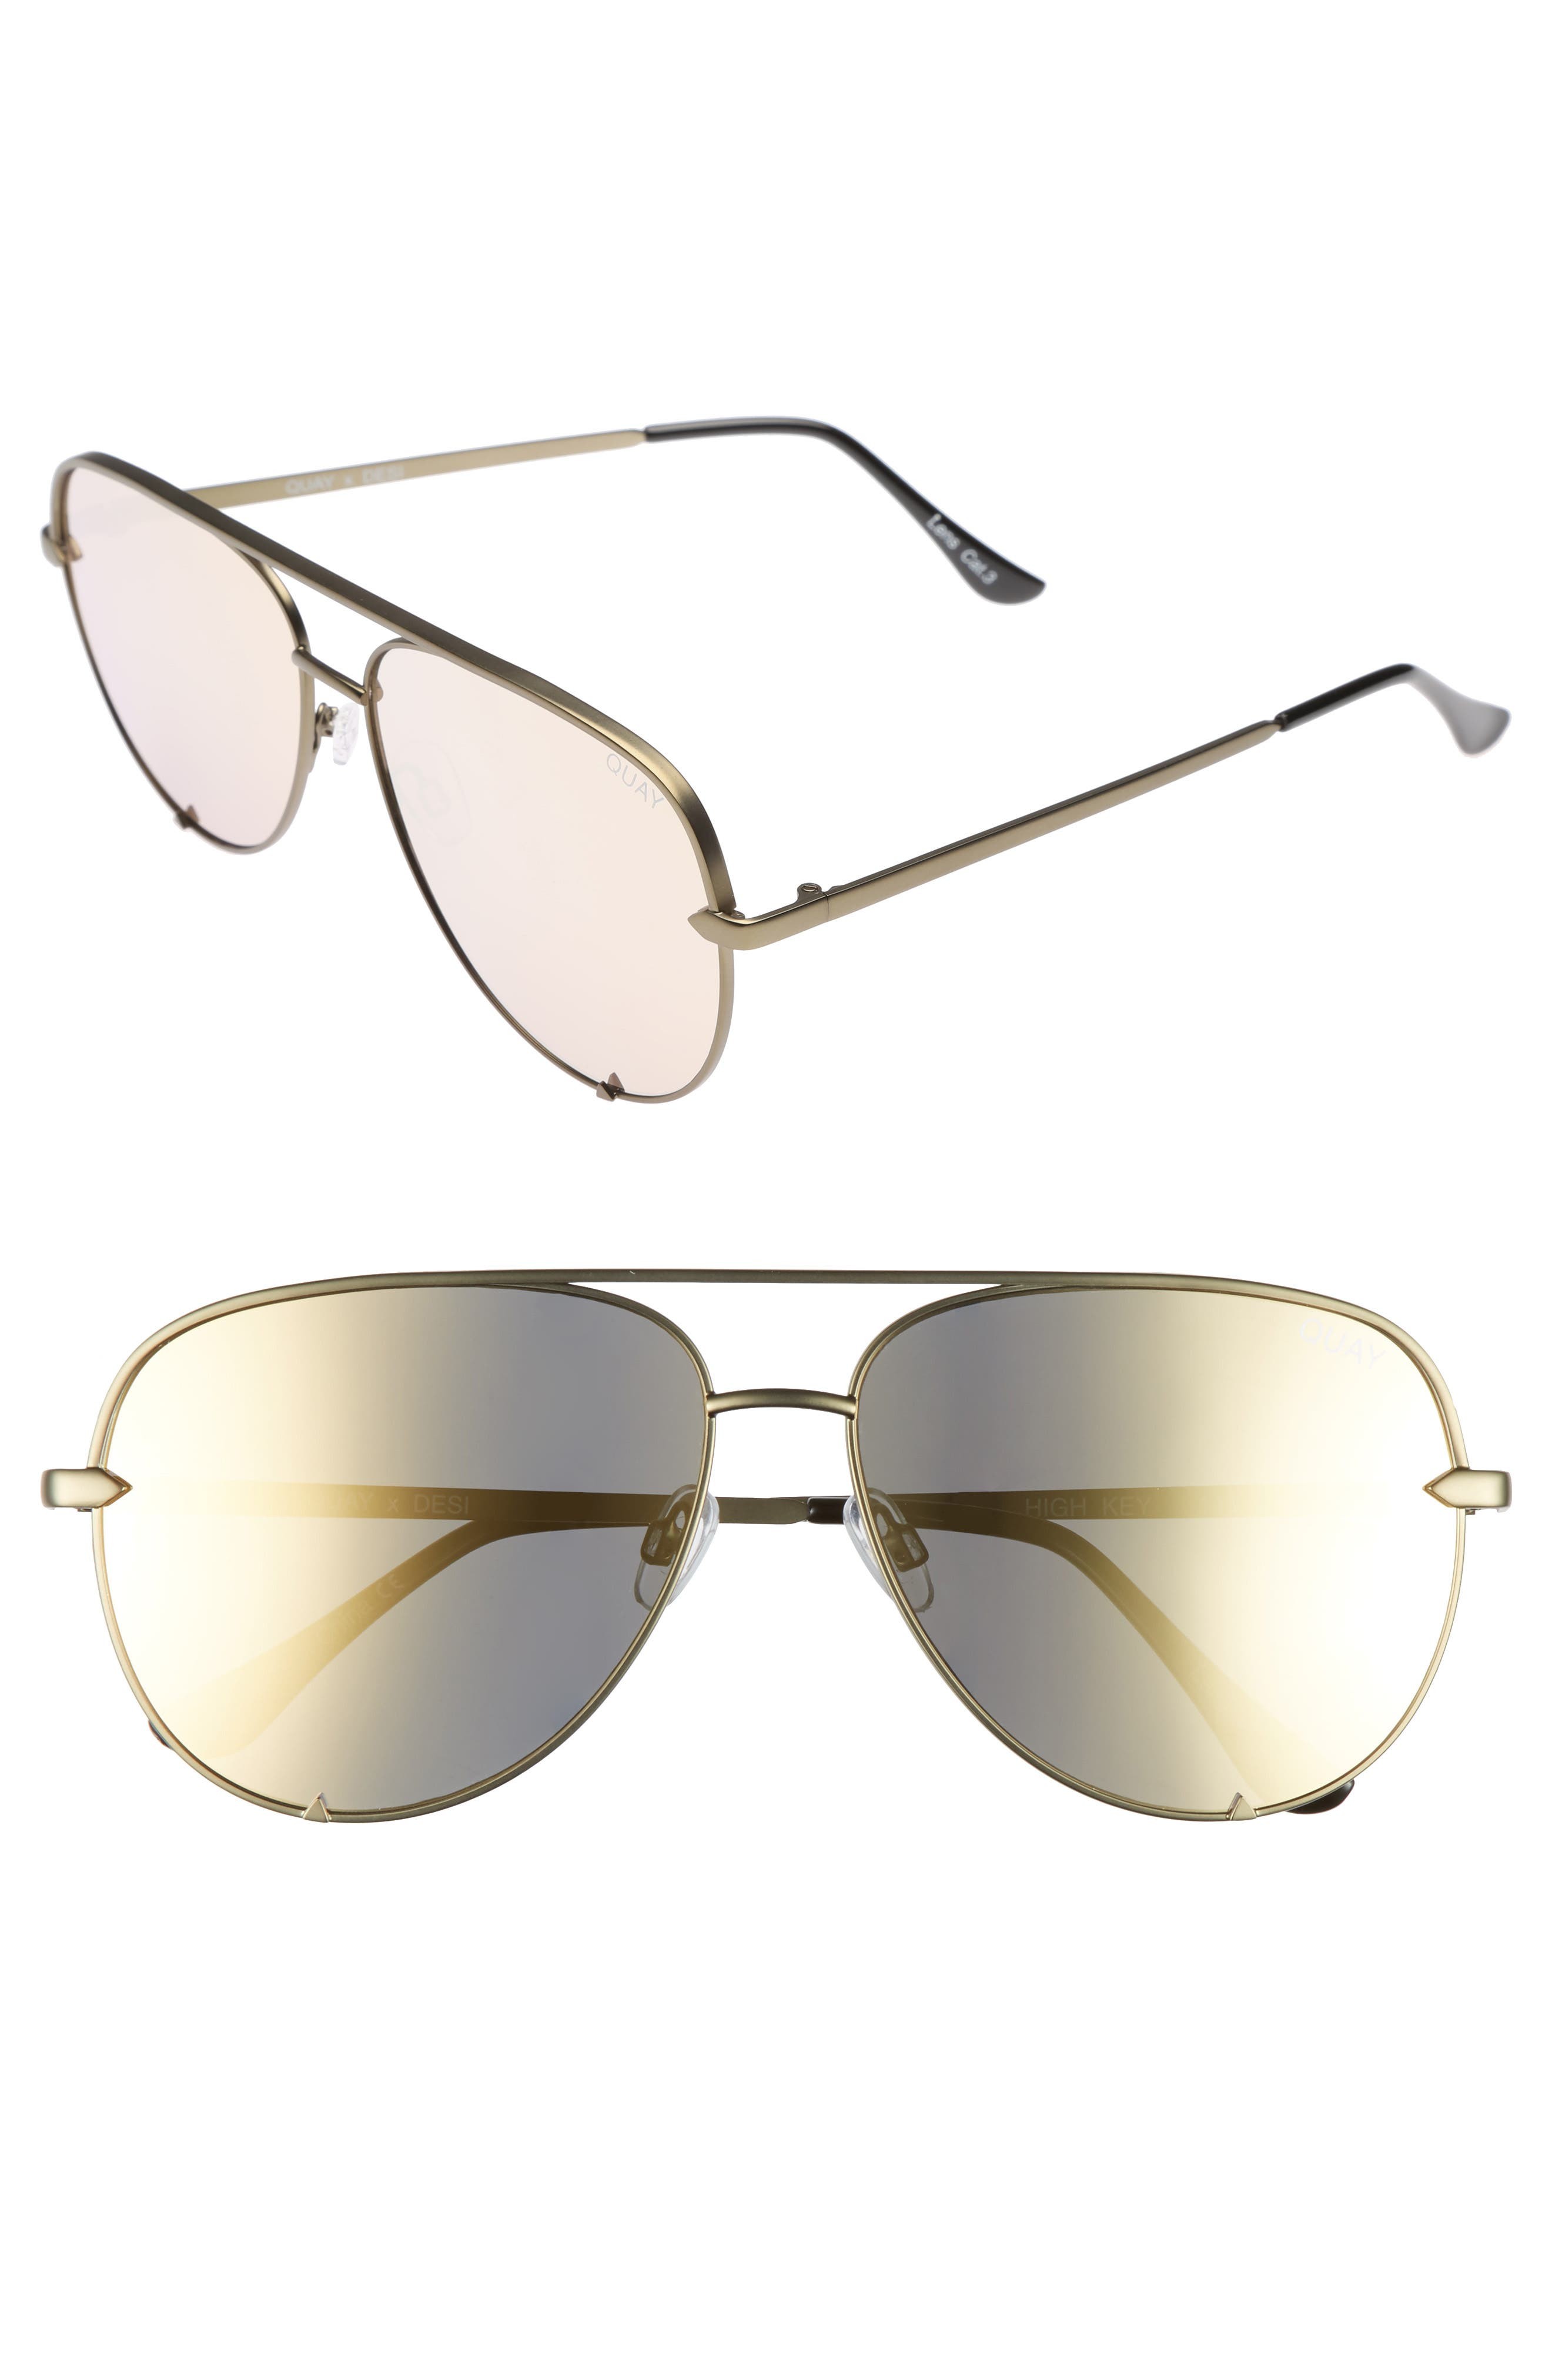 Quay Australia x Desi Perkins High Key 60mm Aviator Sunglasses